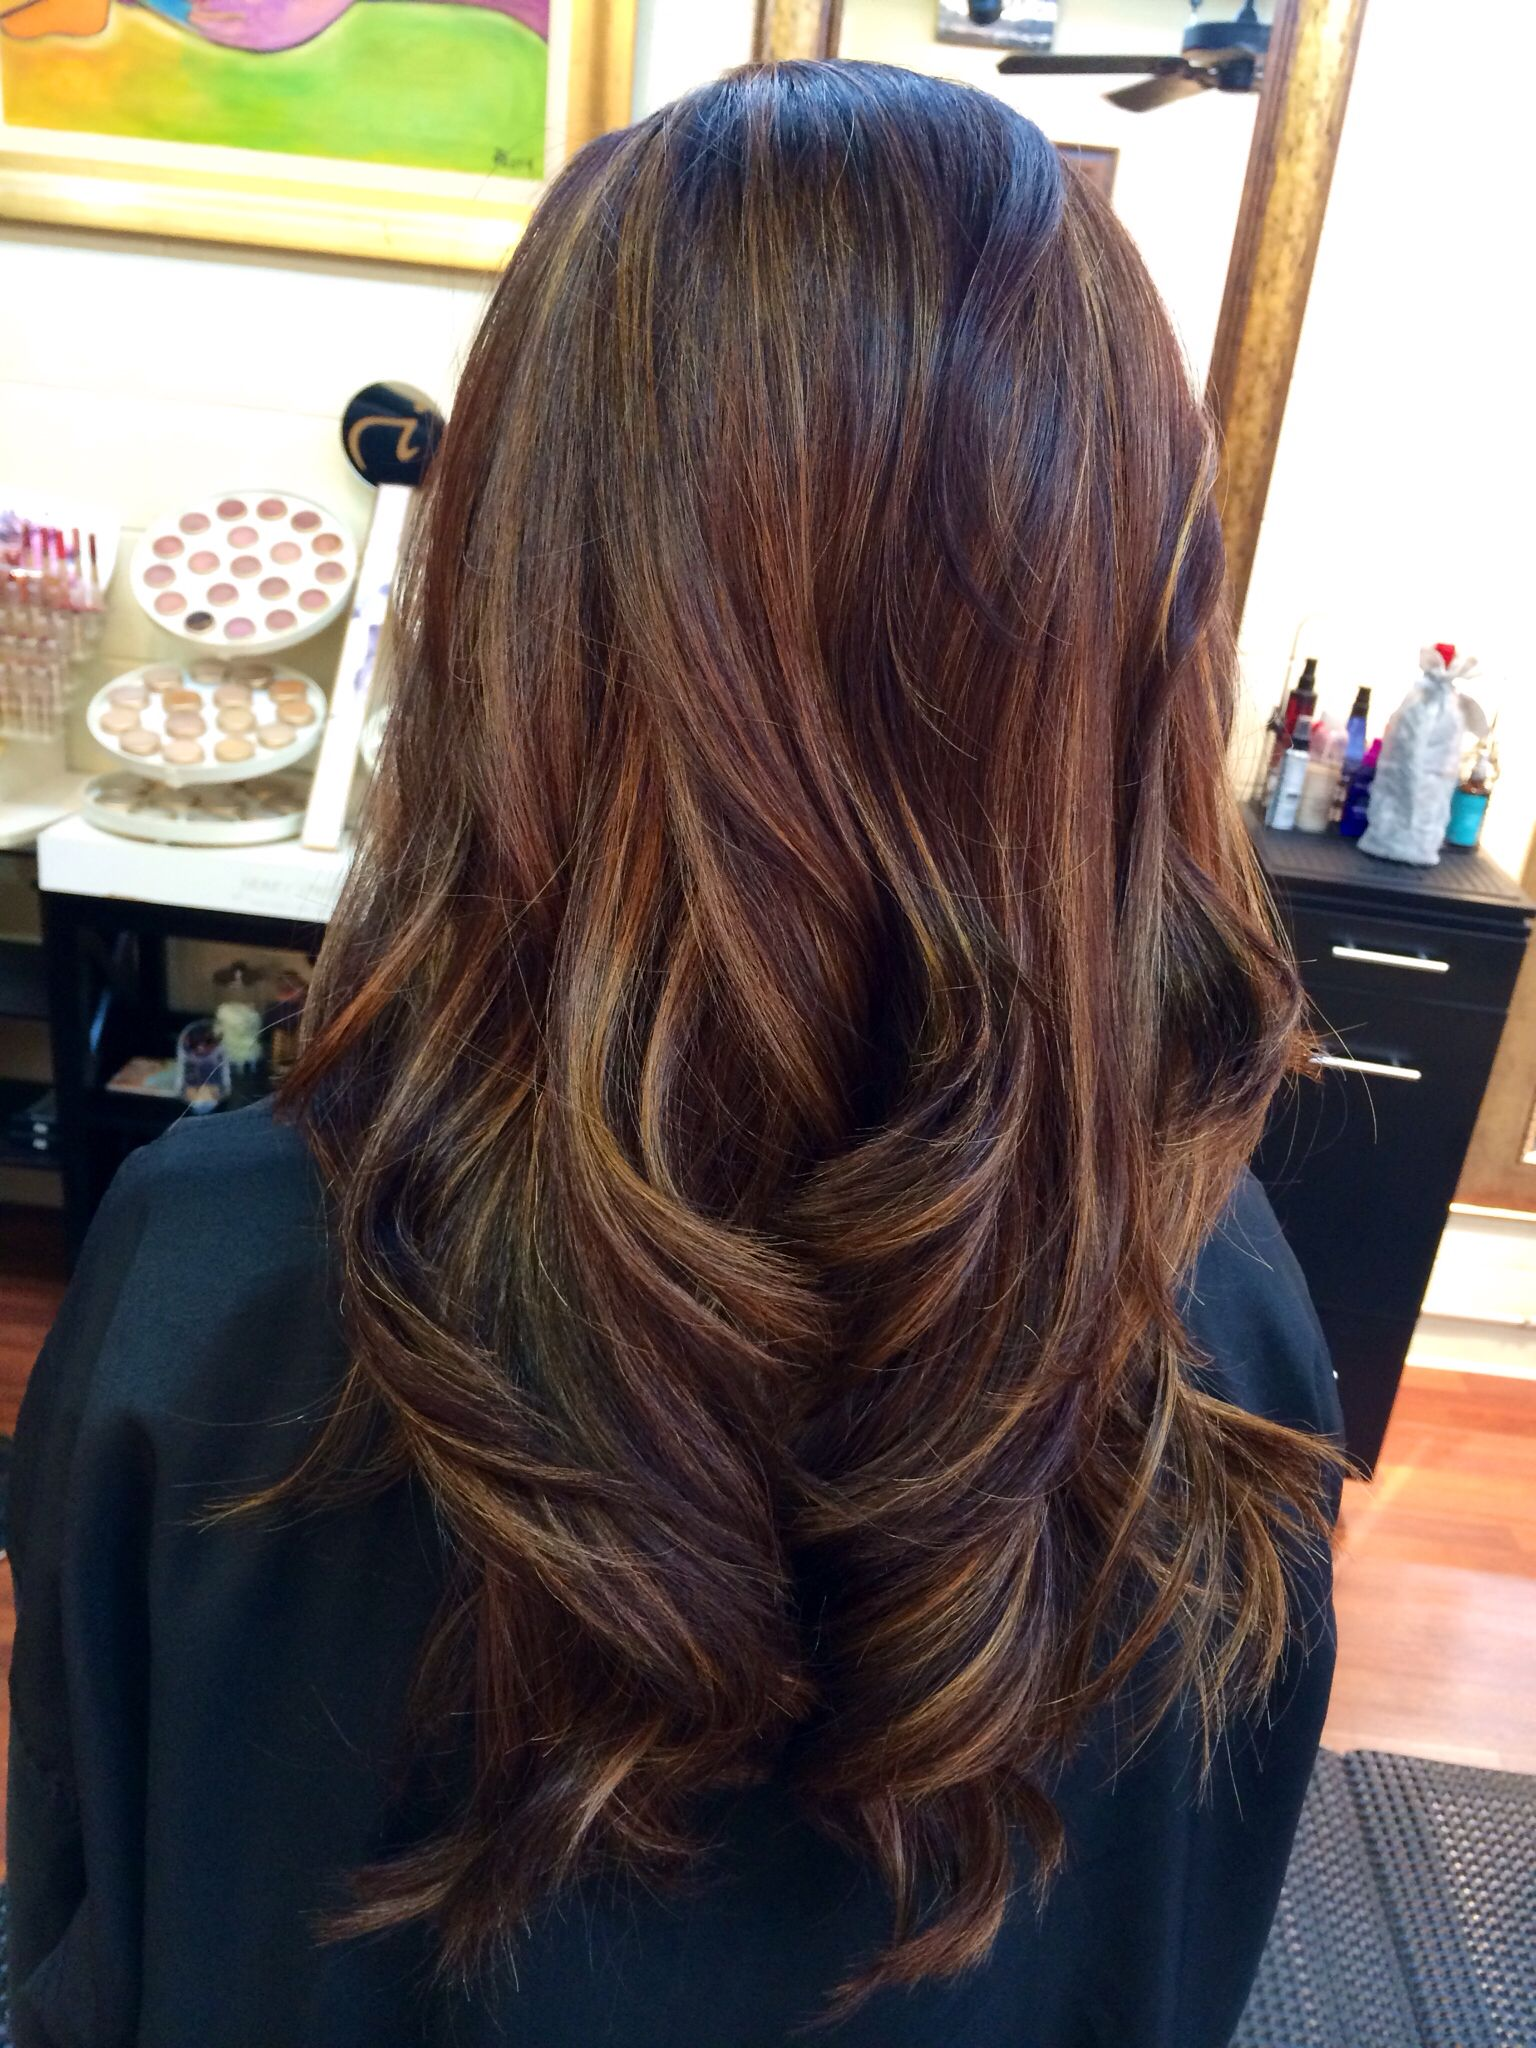 Redbrown With Golden Carmel Highlights Stuff To Buy Pinterest